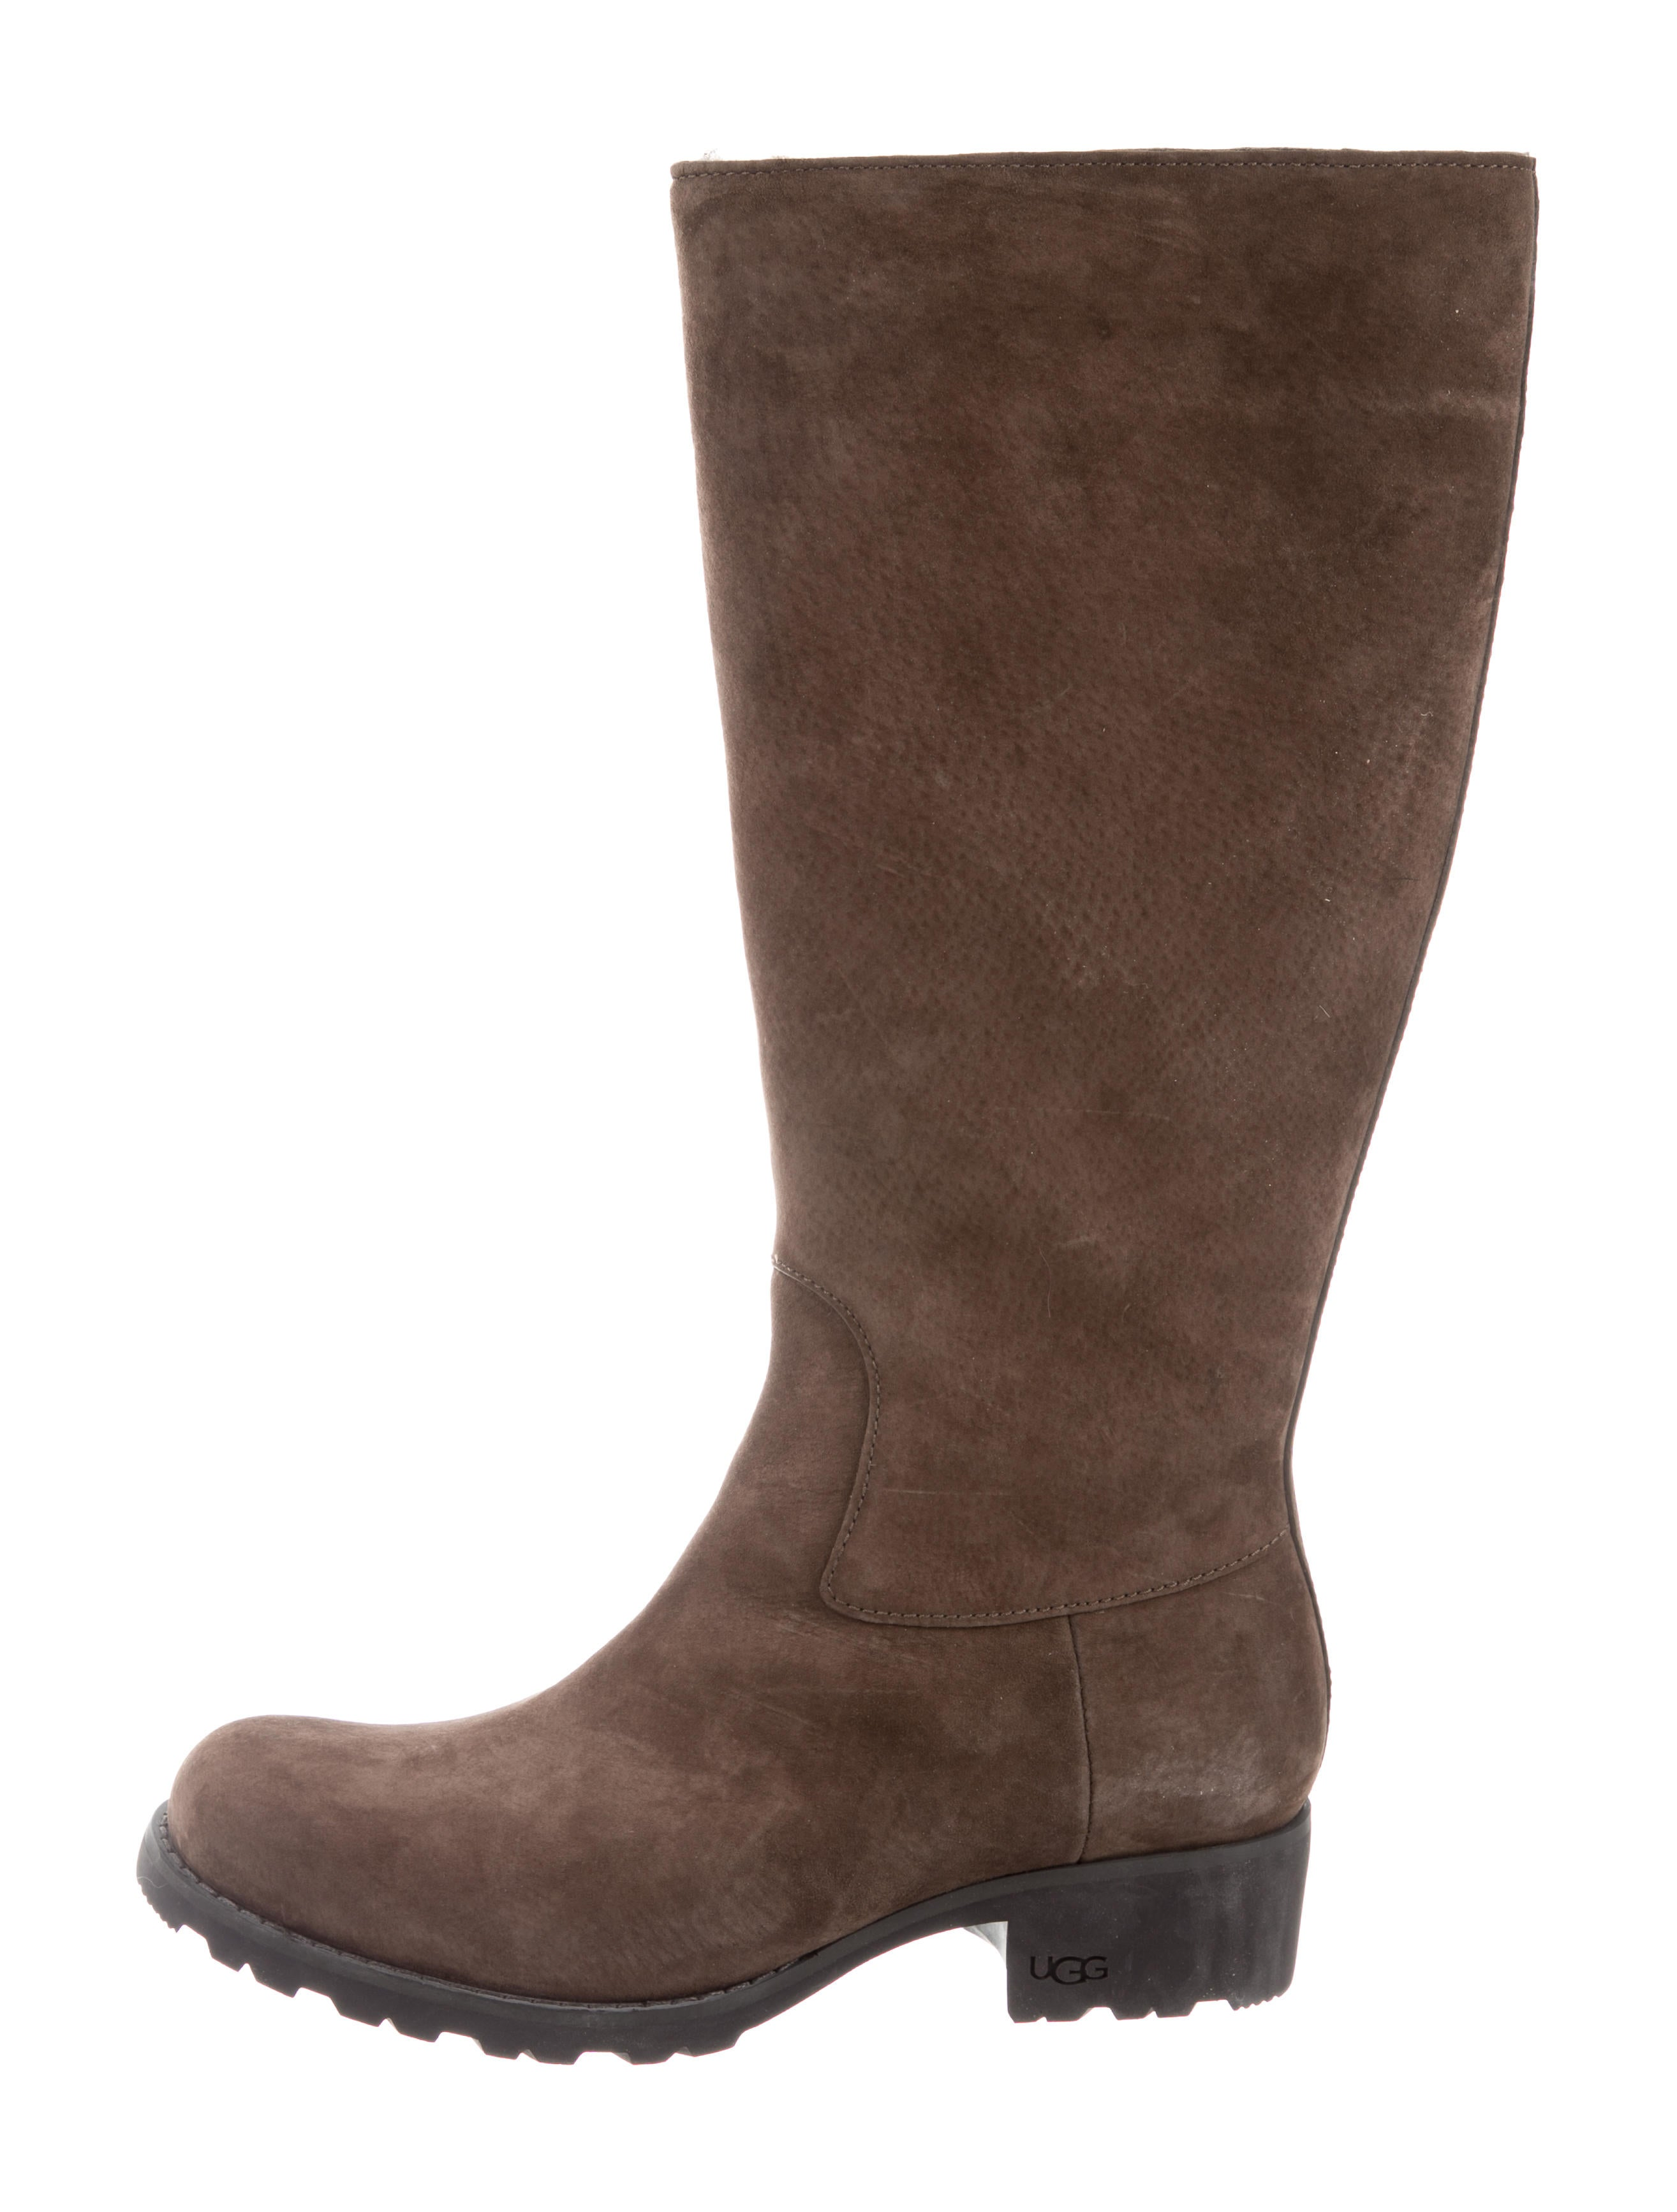 UGG Australia Nubuck Knee-High Boots 2014 new cheap online outlet amazon manchester great sale cheap online YvMc22bWkD